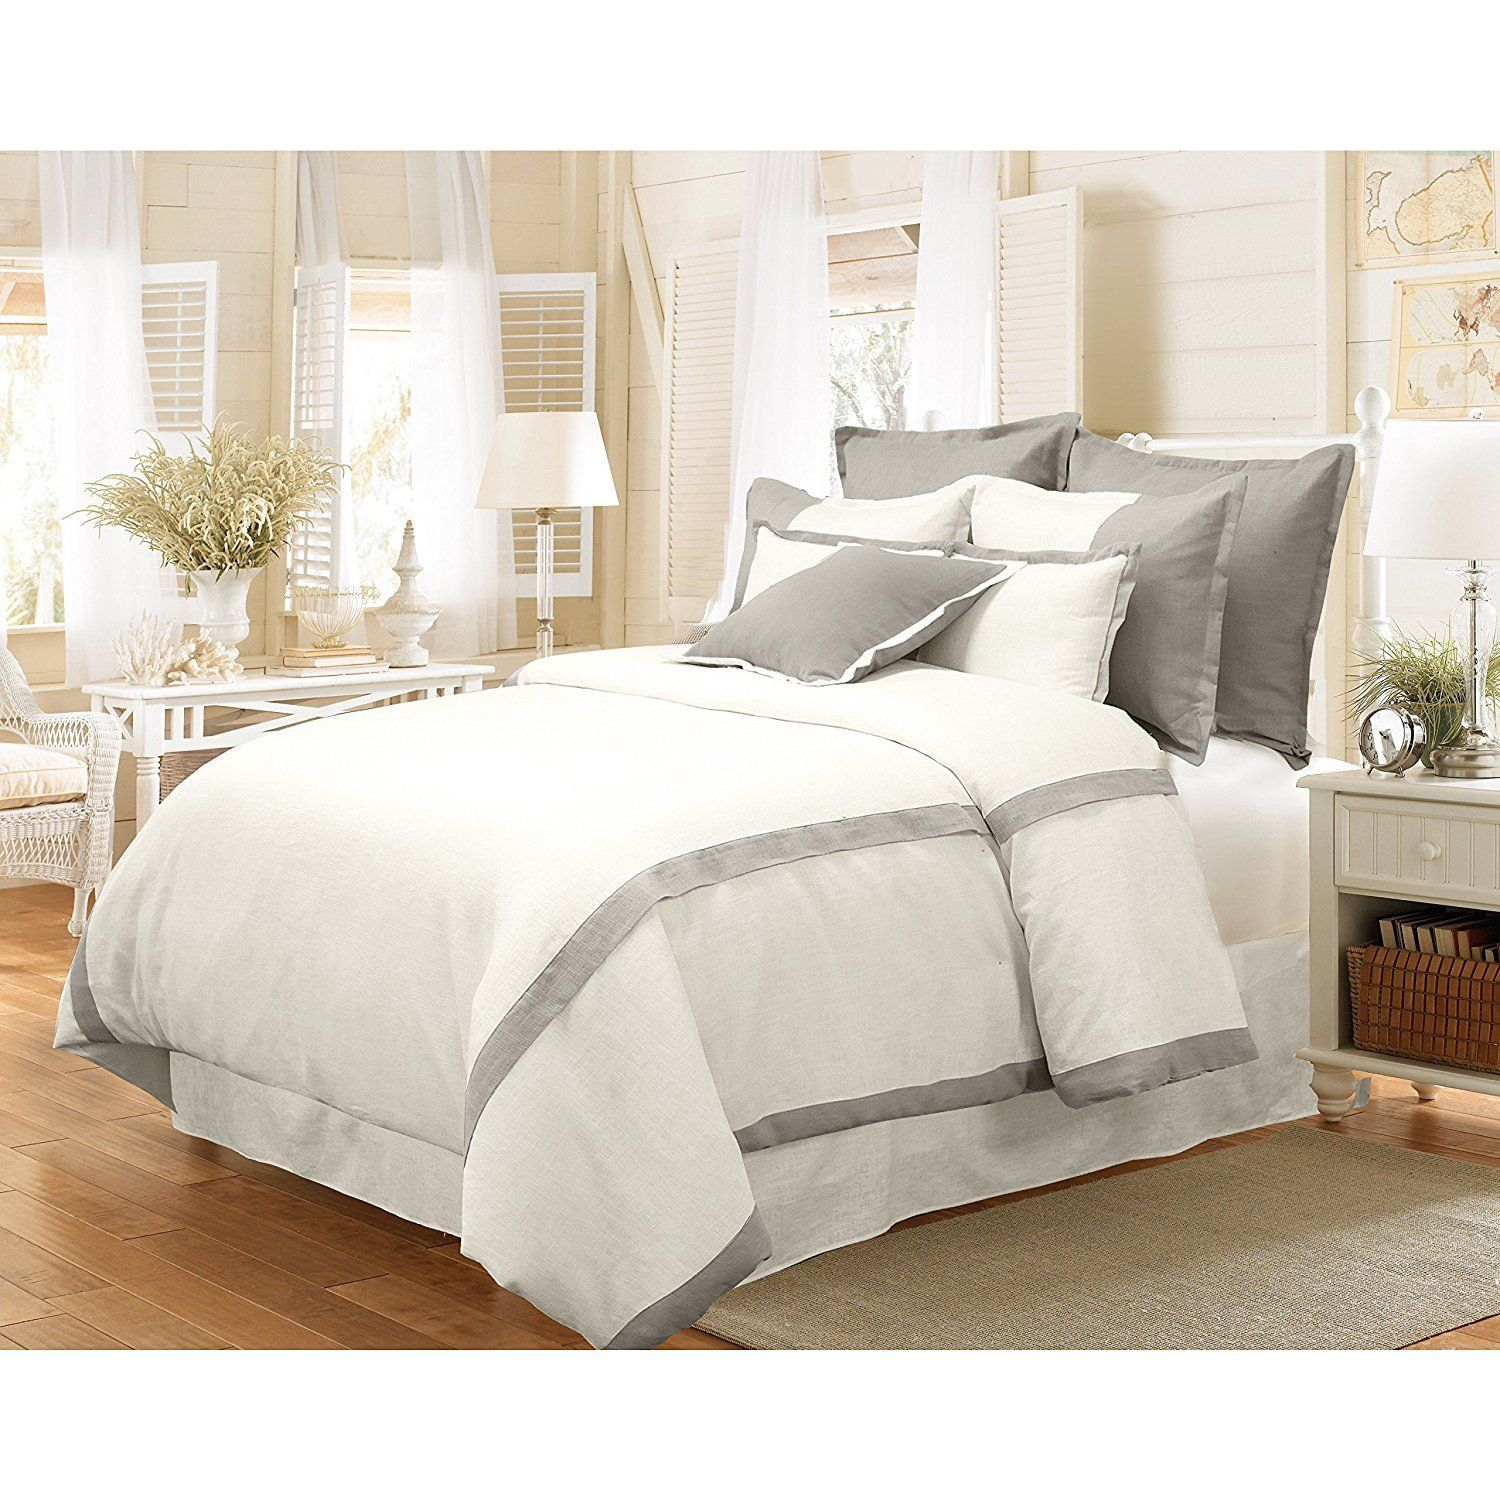 black cover grey patterns and chevron duvet white gray quilt pattern bedding